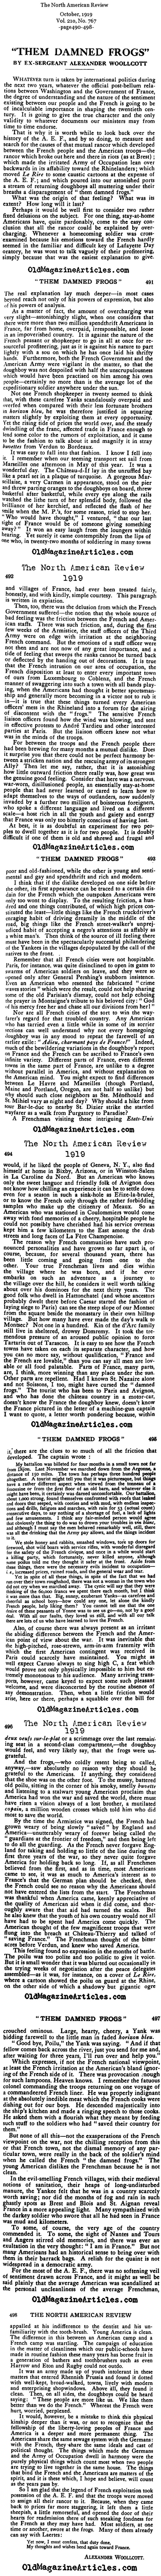 1919: Franco-American Relationship Begin to Cool (The North American Review, 1919)